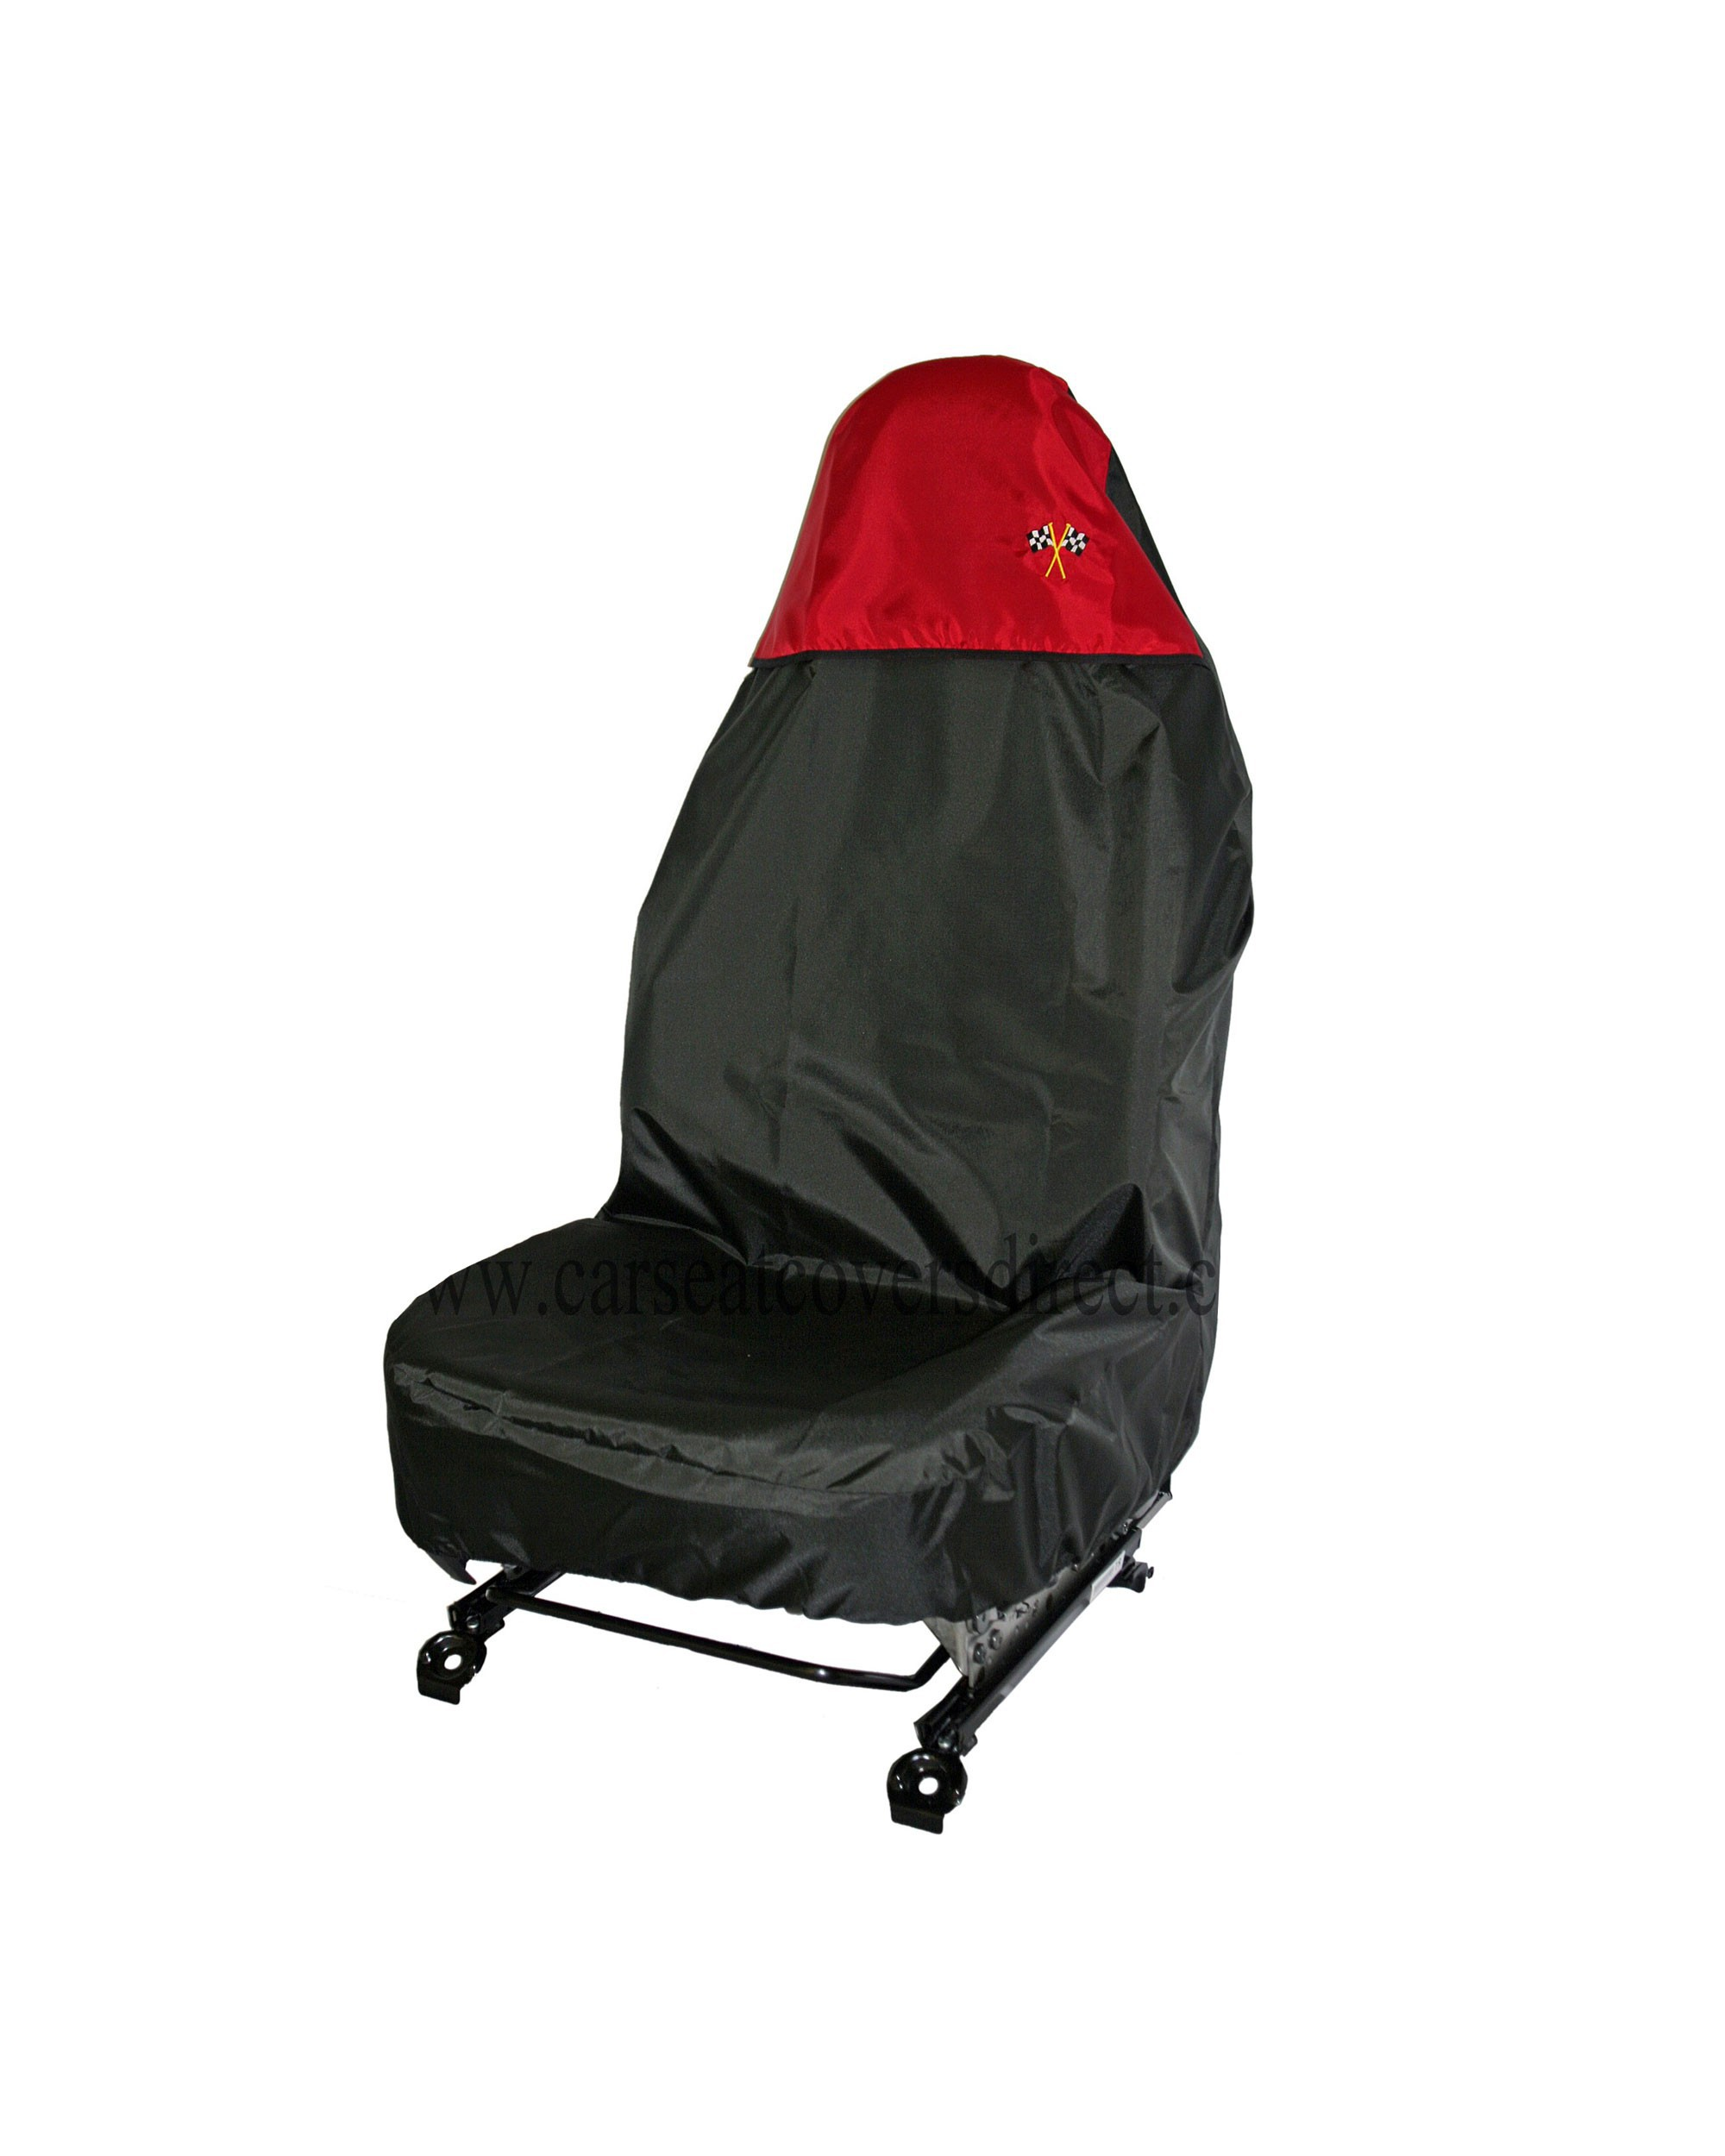 Polyester seat protector in red